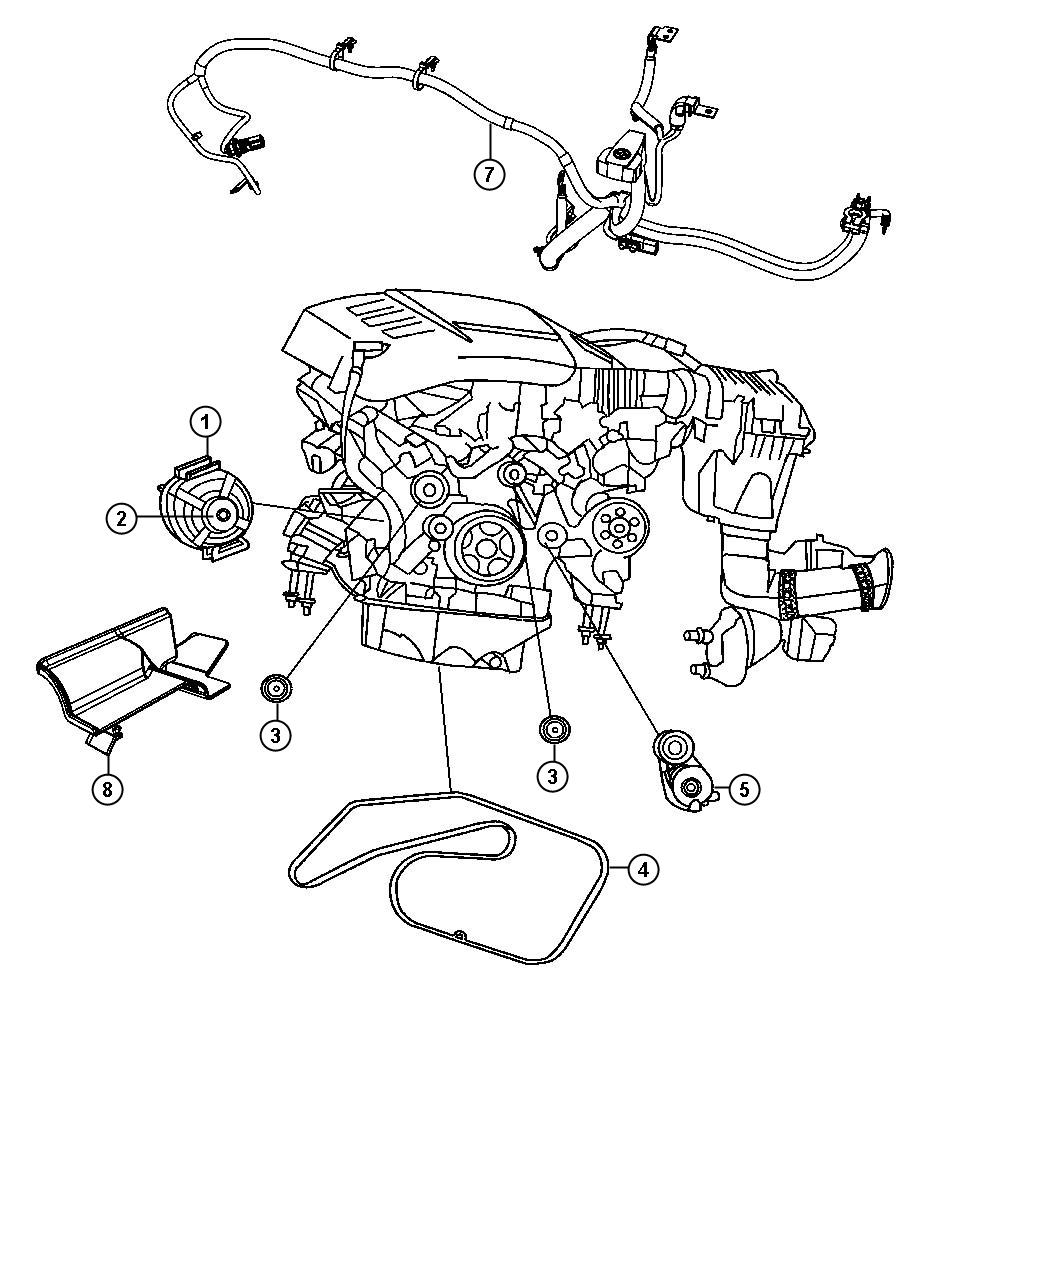 Jeep Cj7 Ignition Wiring Diagram